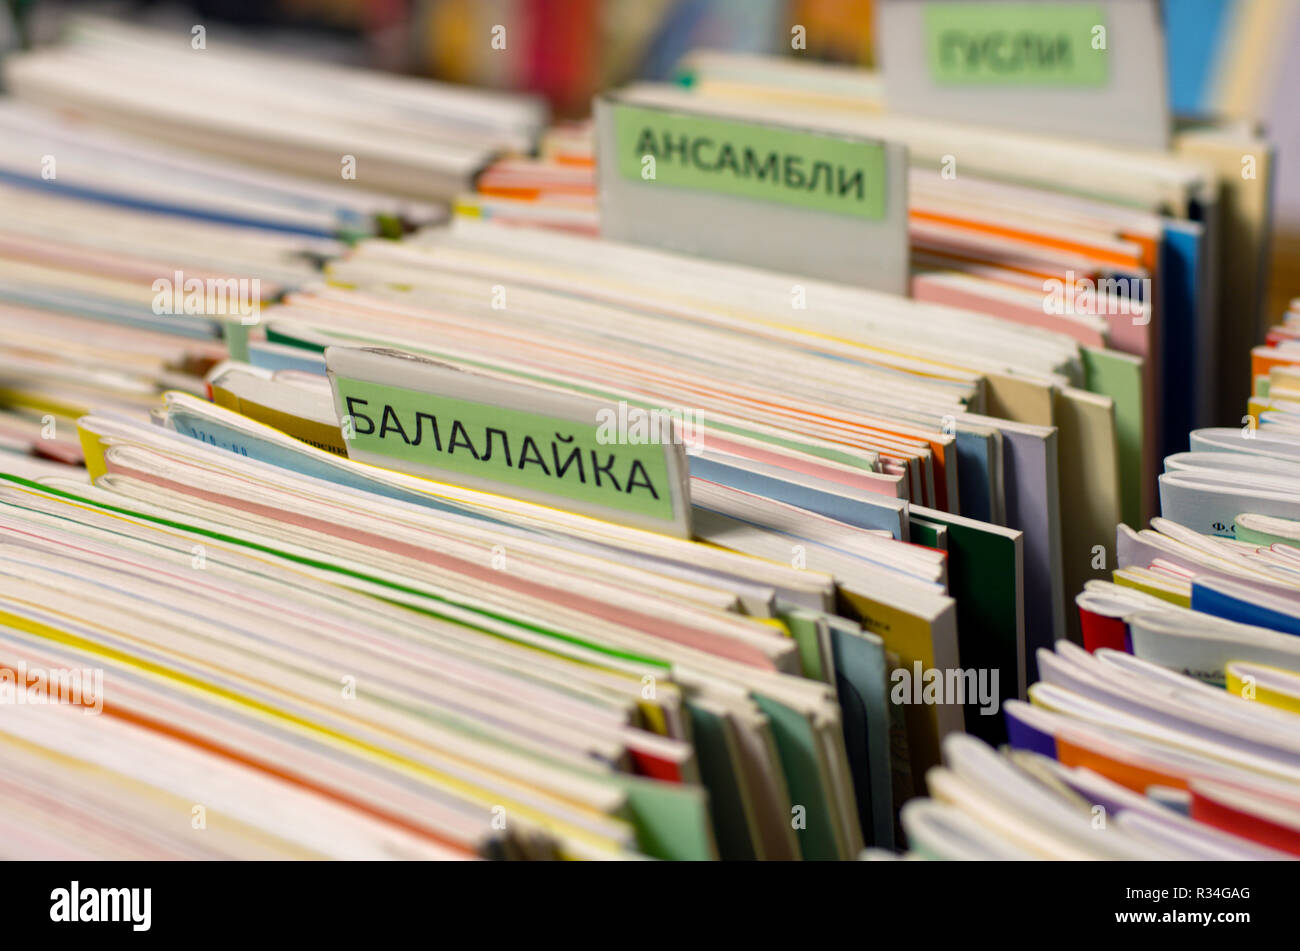 Edges of the multi-colored musical notebooks put in a row with the inscriptions in Russian 'balalaika' and 'ensembles' on a blurred background. - Stock Image